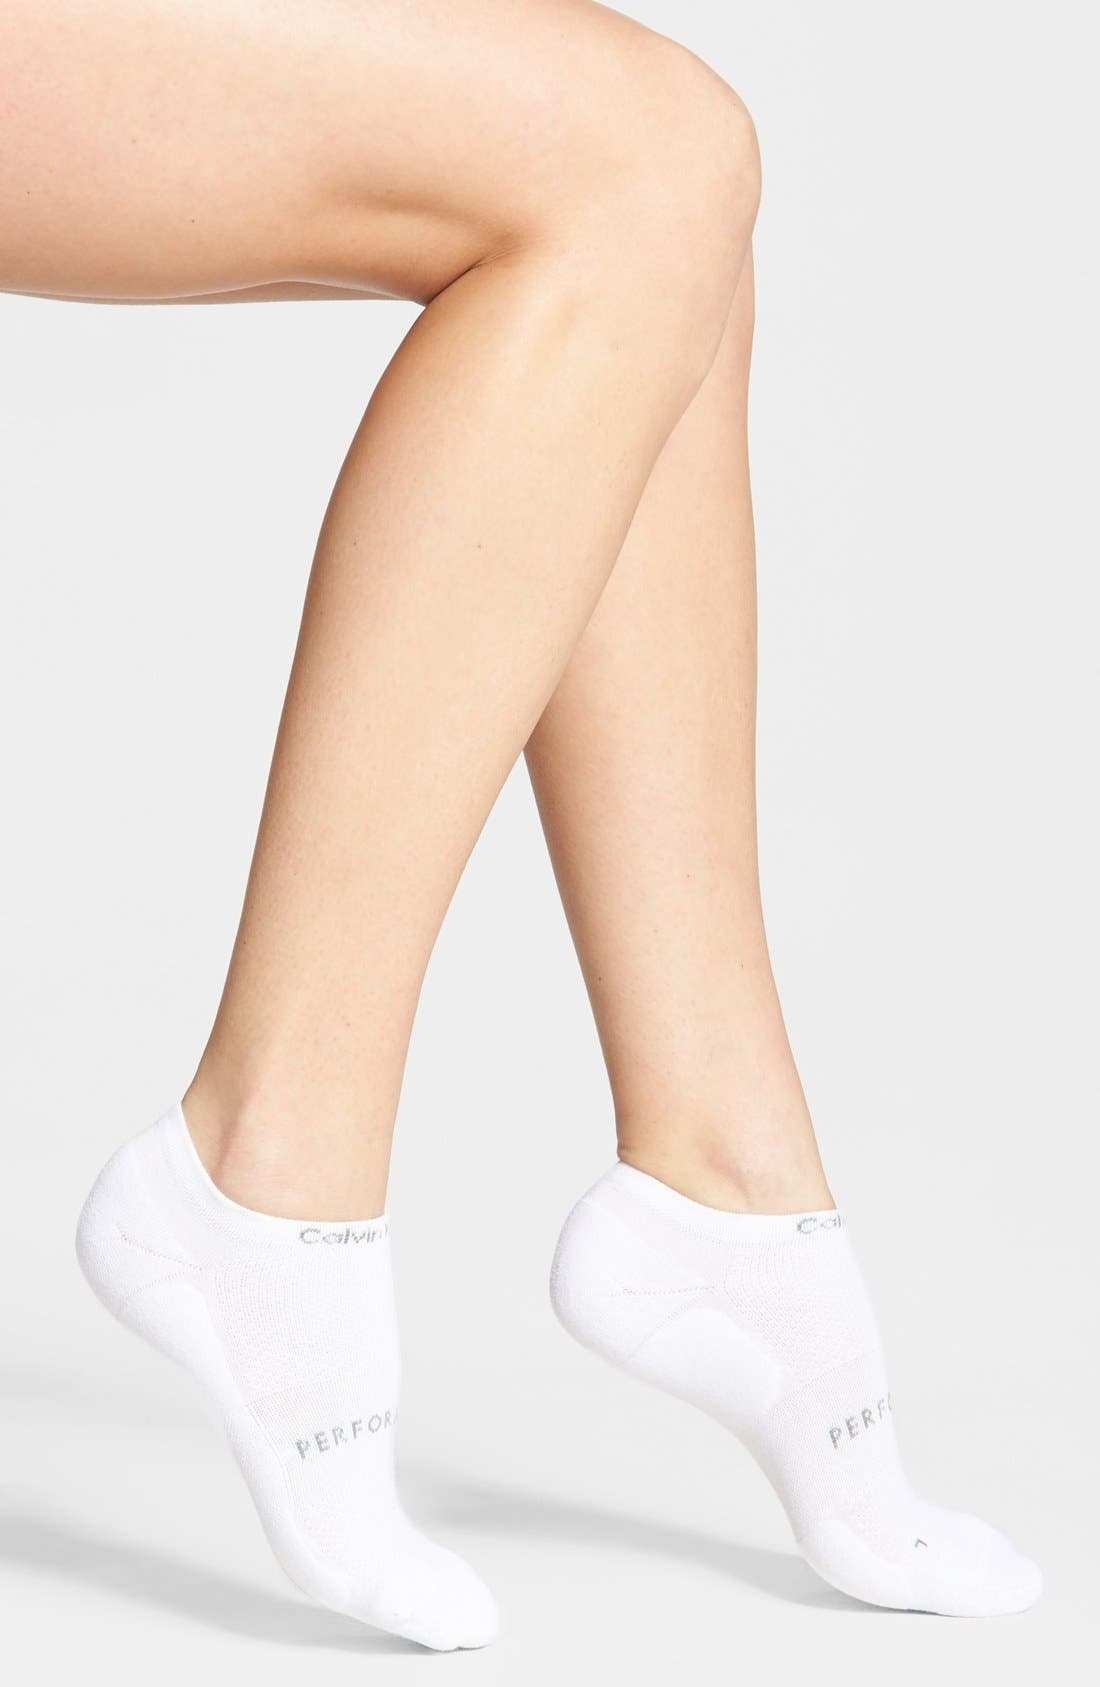 Alternate Image 1 Selected - Calvin Klein 'Impact' Running Socks (Online Only)